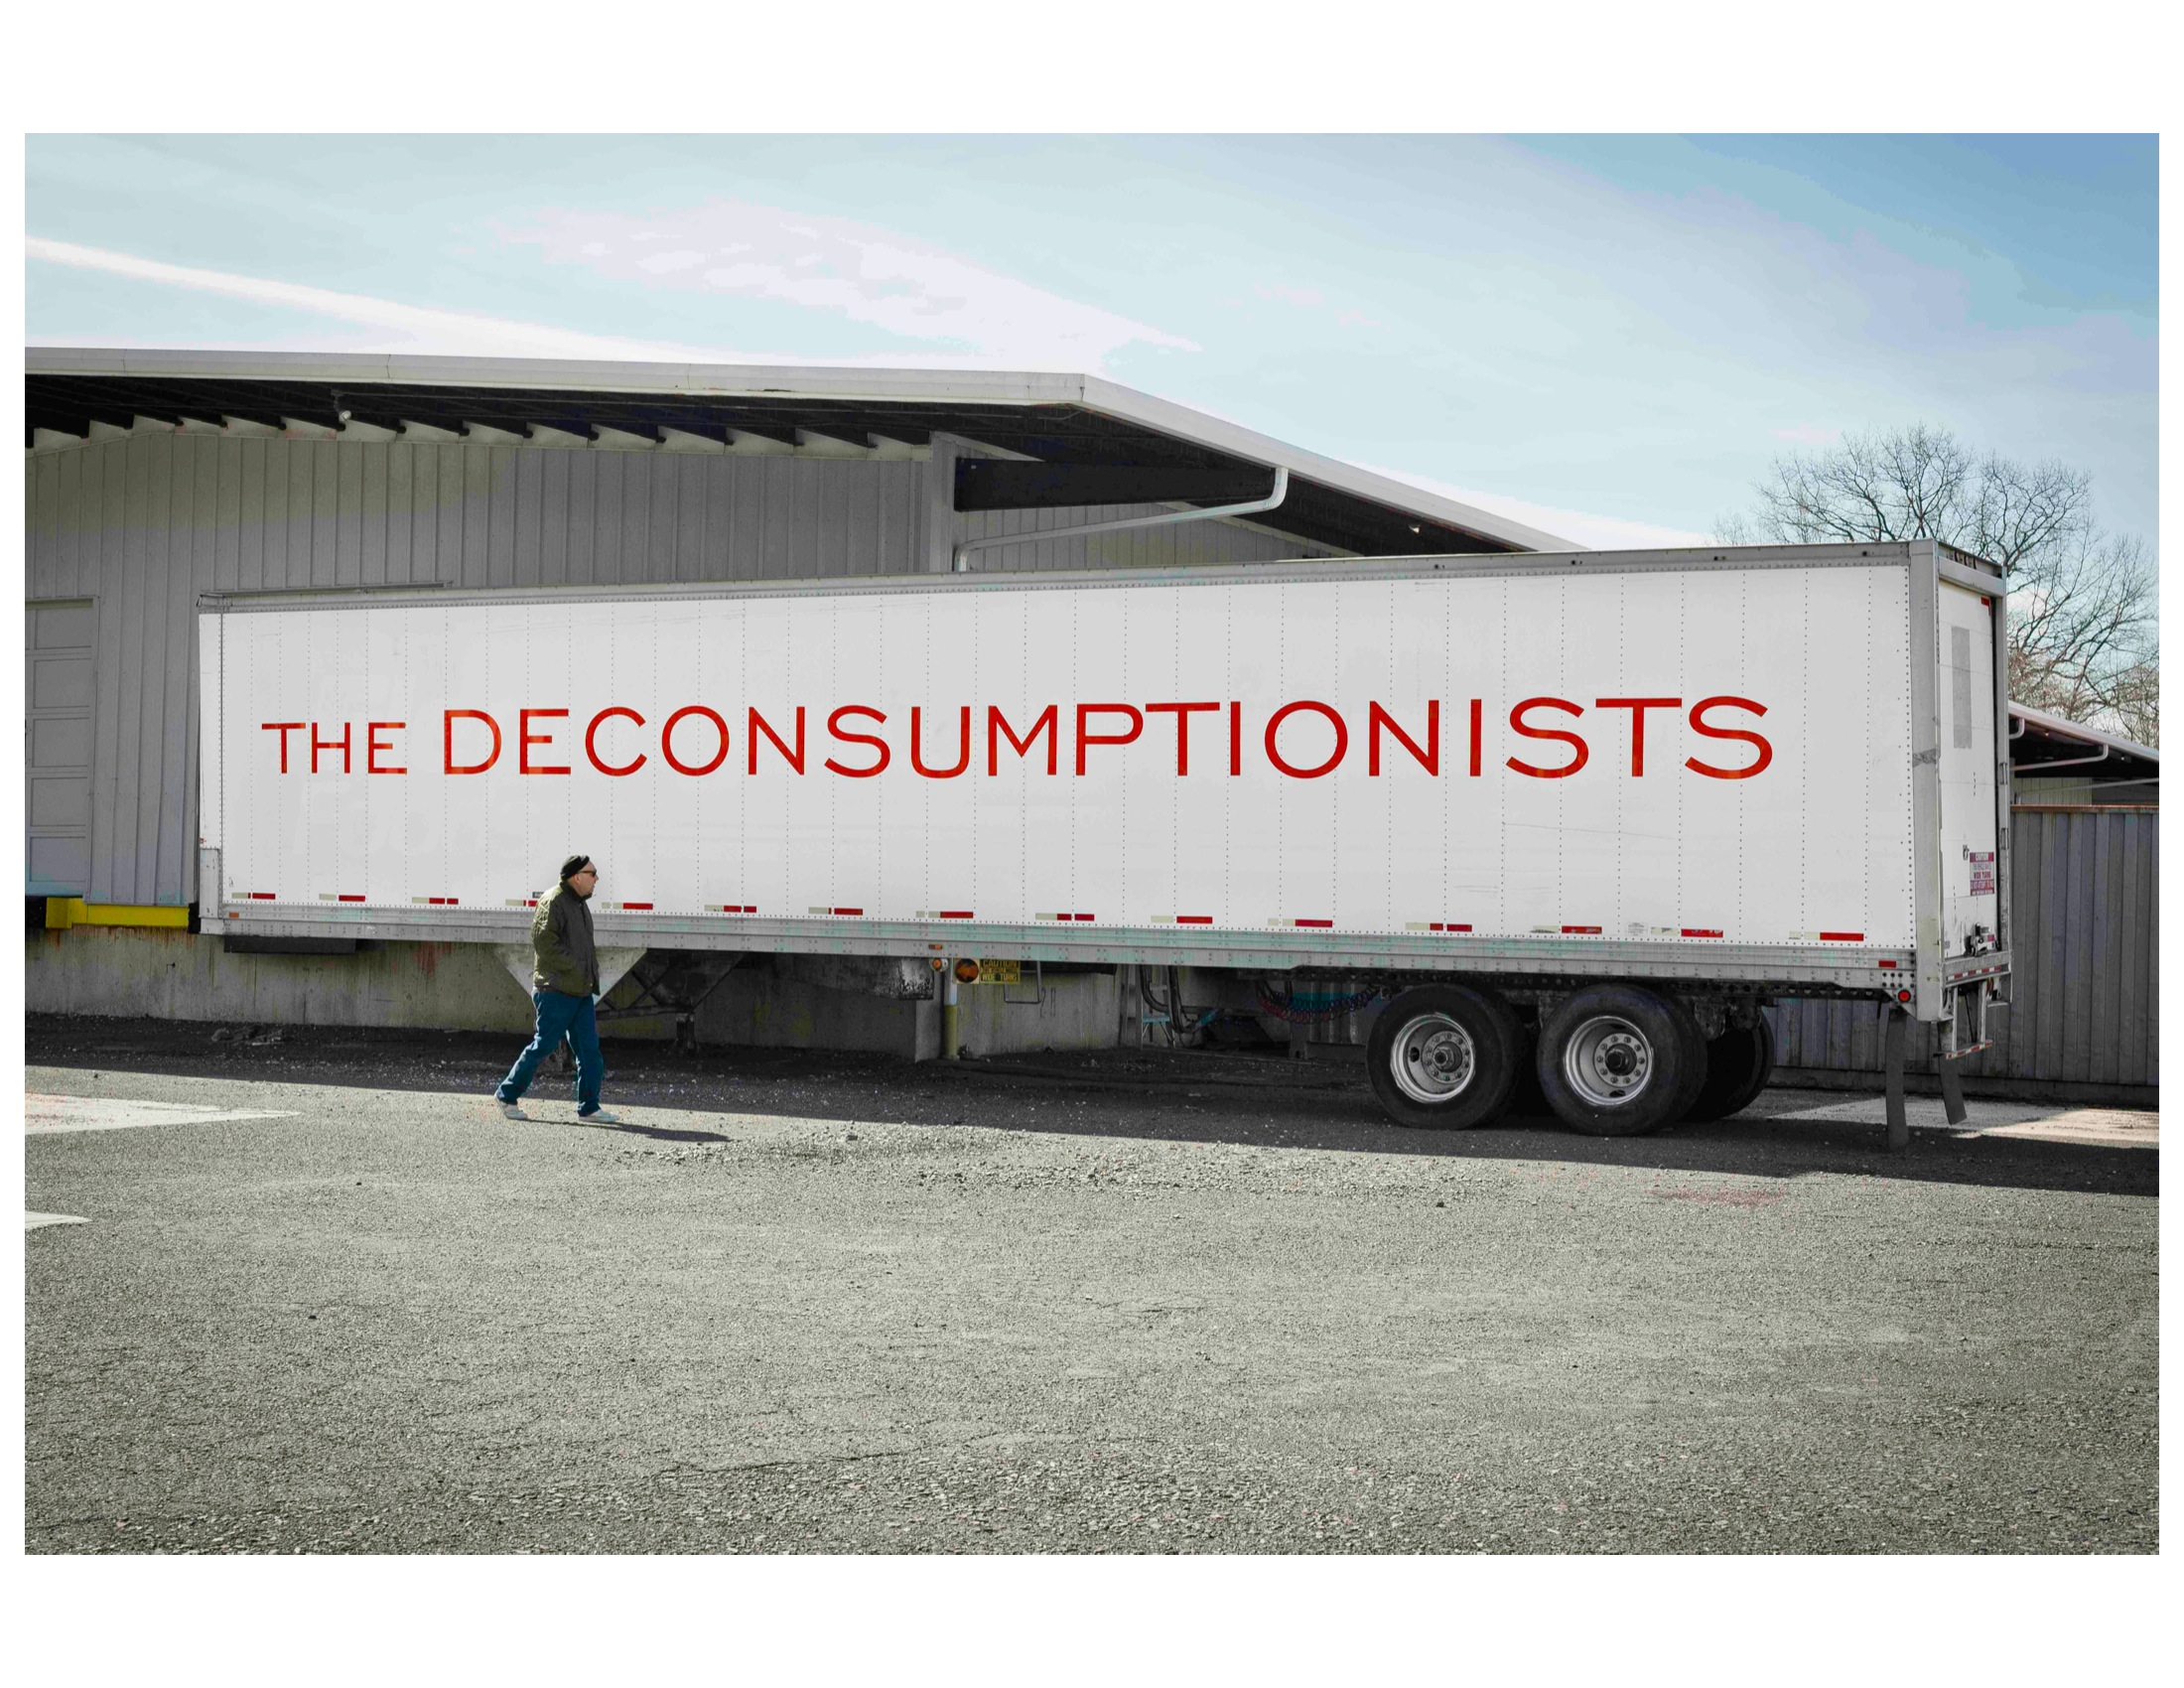 EIDIA - Paul Lamarre, Melissa P. Wolf The Deconsumptionists, Art As Archive 48ft semi-trailer exterior view, Philadelphia, Pennsylvania USA ©Lamarre Wolf 2011